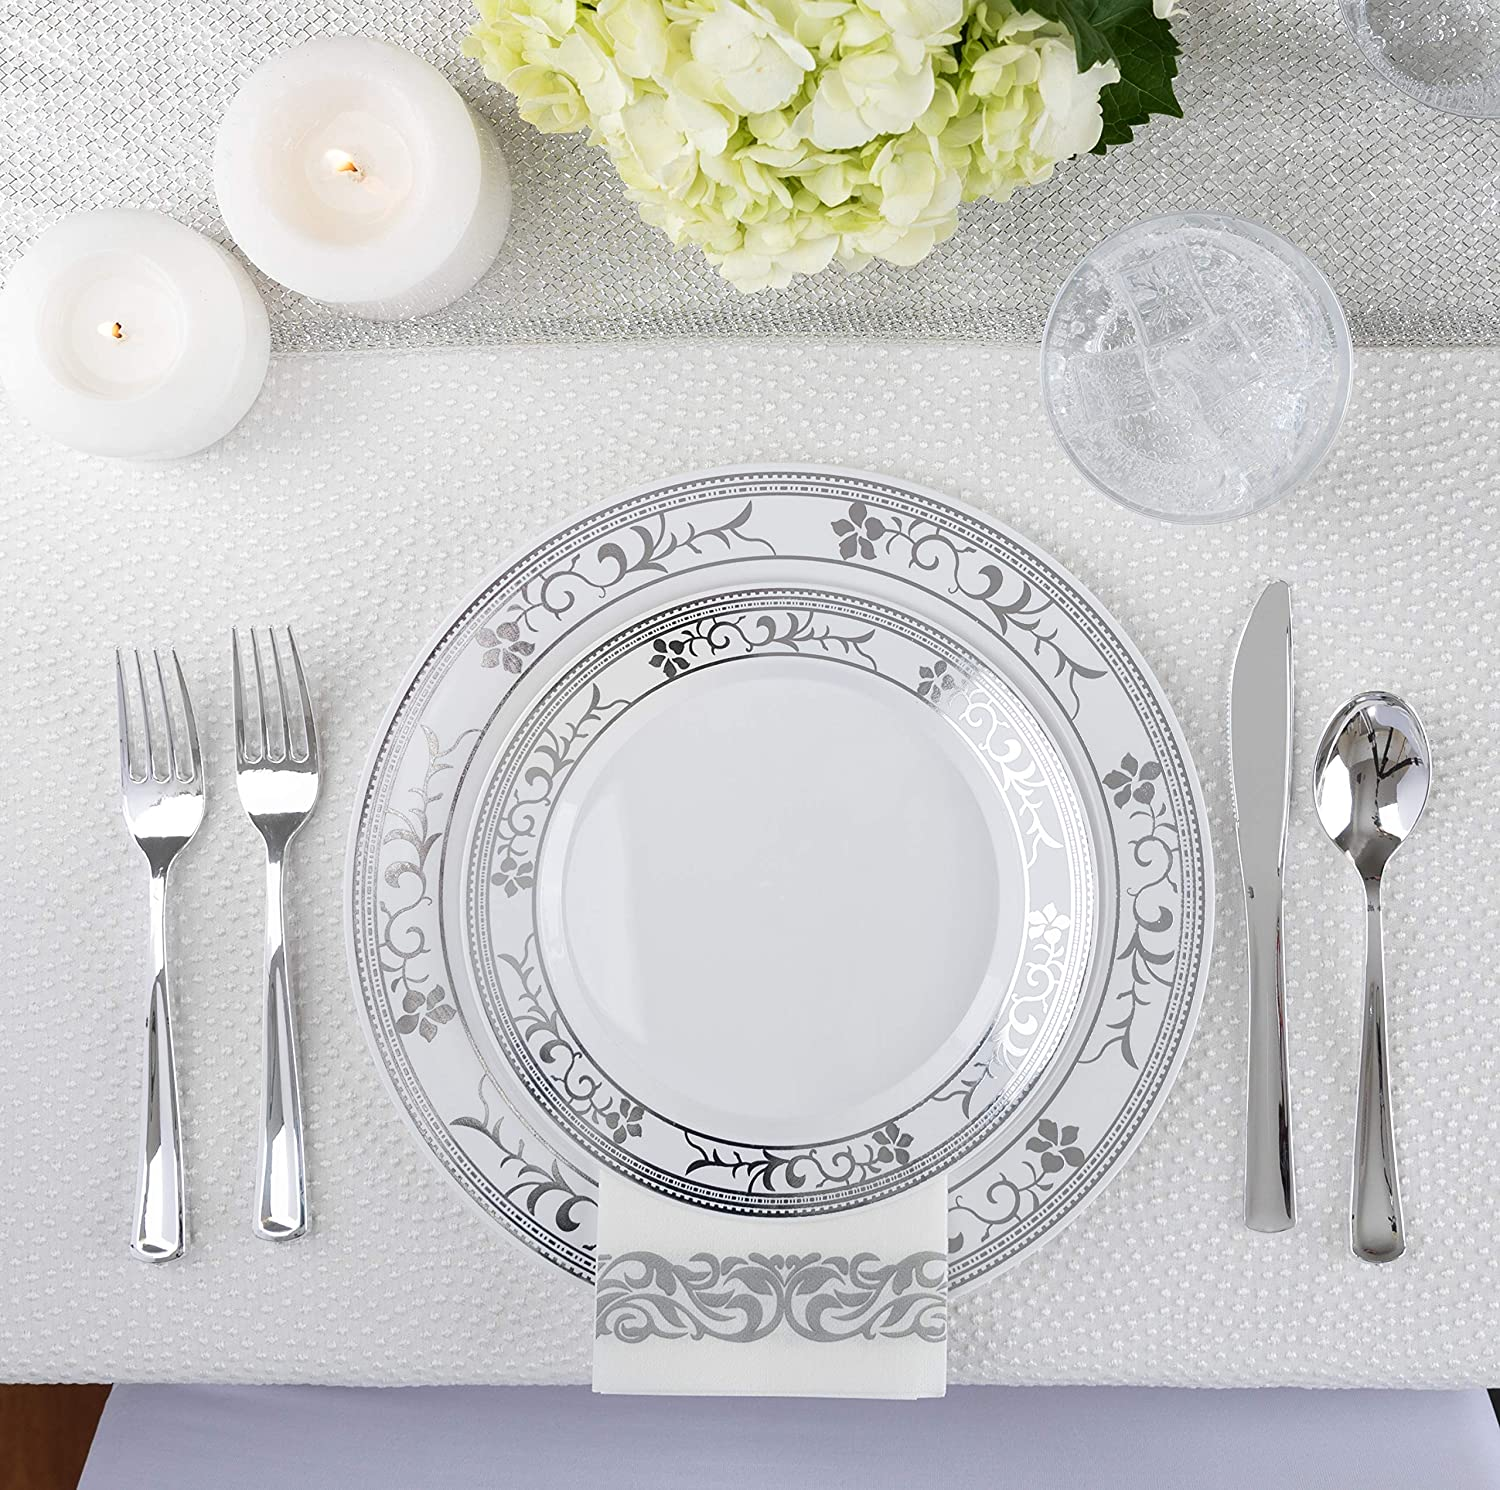 Knives Spoons Forks Elegant Plastic Dinnerware with Wedding Plates /& Cutlery 125-Piece Gold Disposable Plates /& Gold Plastic Silverware- Service for 25 Guests Fancy Plastic Dinner Plates